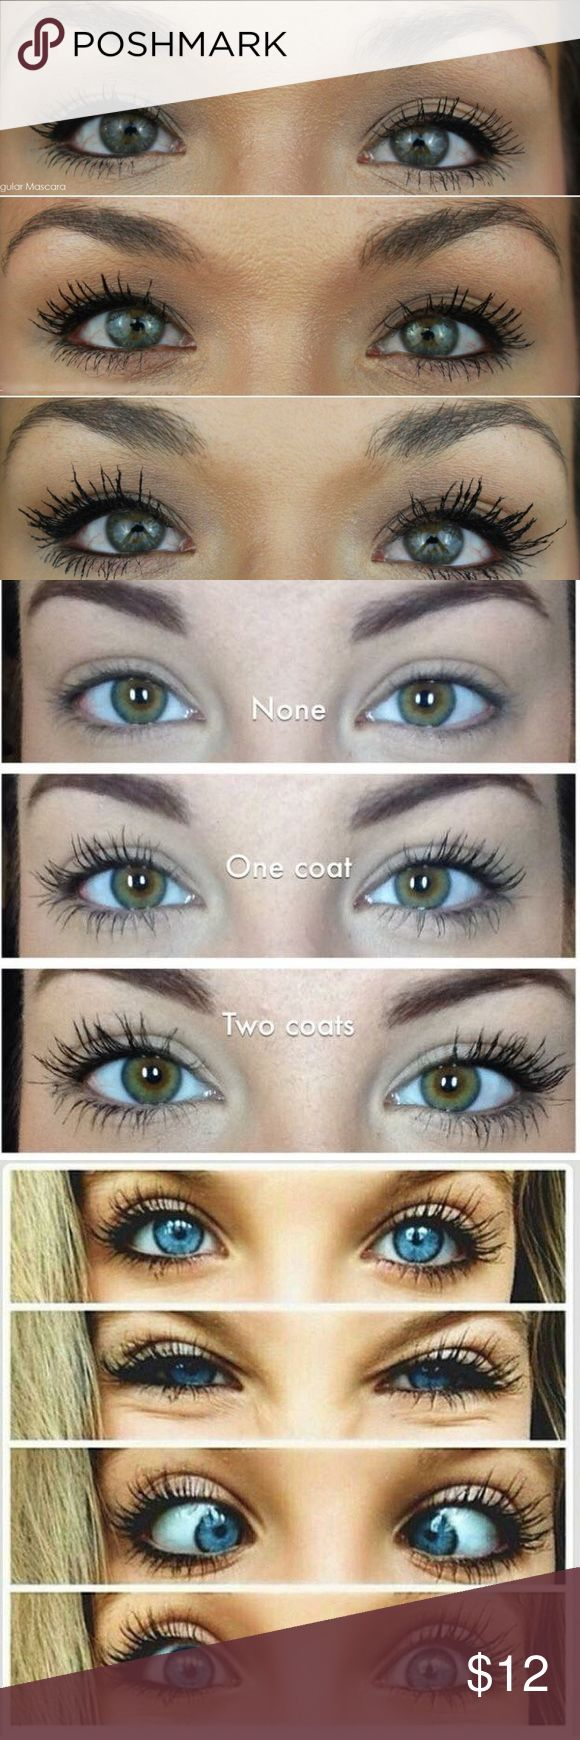 3D Fiber Lash Mascara Brand new  Fibers are black colored ✨100% all natural organic green tea fibers 2 in 1 wand  ❗️⭐️How to:⭐️ ✨Apply first coat of mascara/transplant gel. Be sure to fully coat your lashes ✨Apply fibers. Close your eye enough while applying fibers, as they are loose and can fall into your eye  ✨Apply another coat of mascara  ✨Repeat until you achieve your desired look   ❤️Orders are processed & shipped out in 2-4 biz days.  lash eyelash makeup falsies false eyelashes growth…